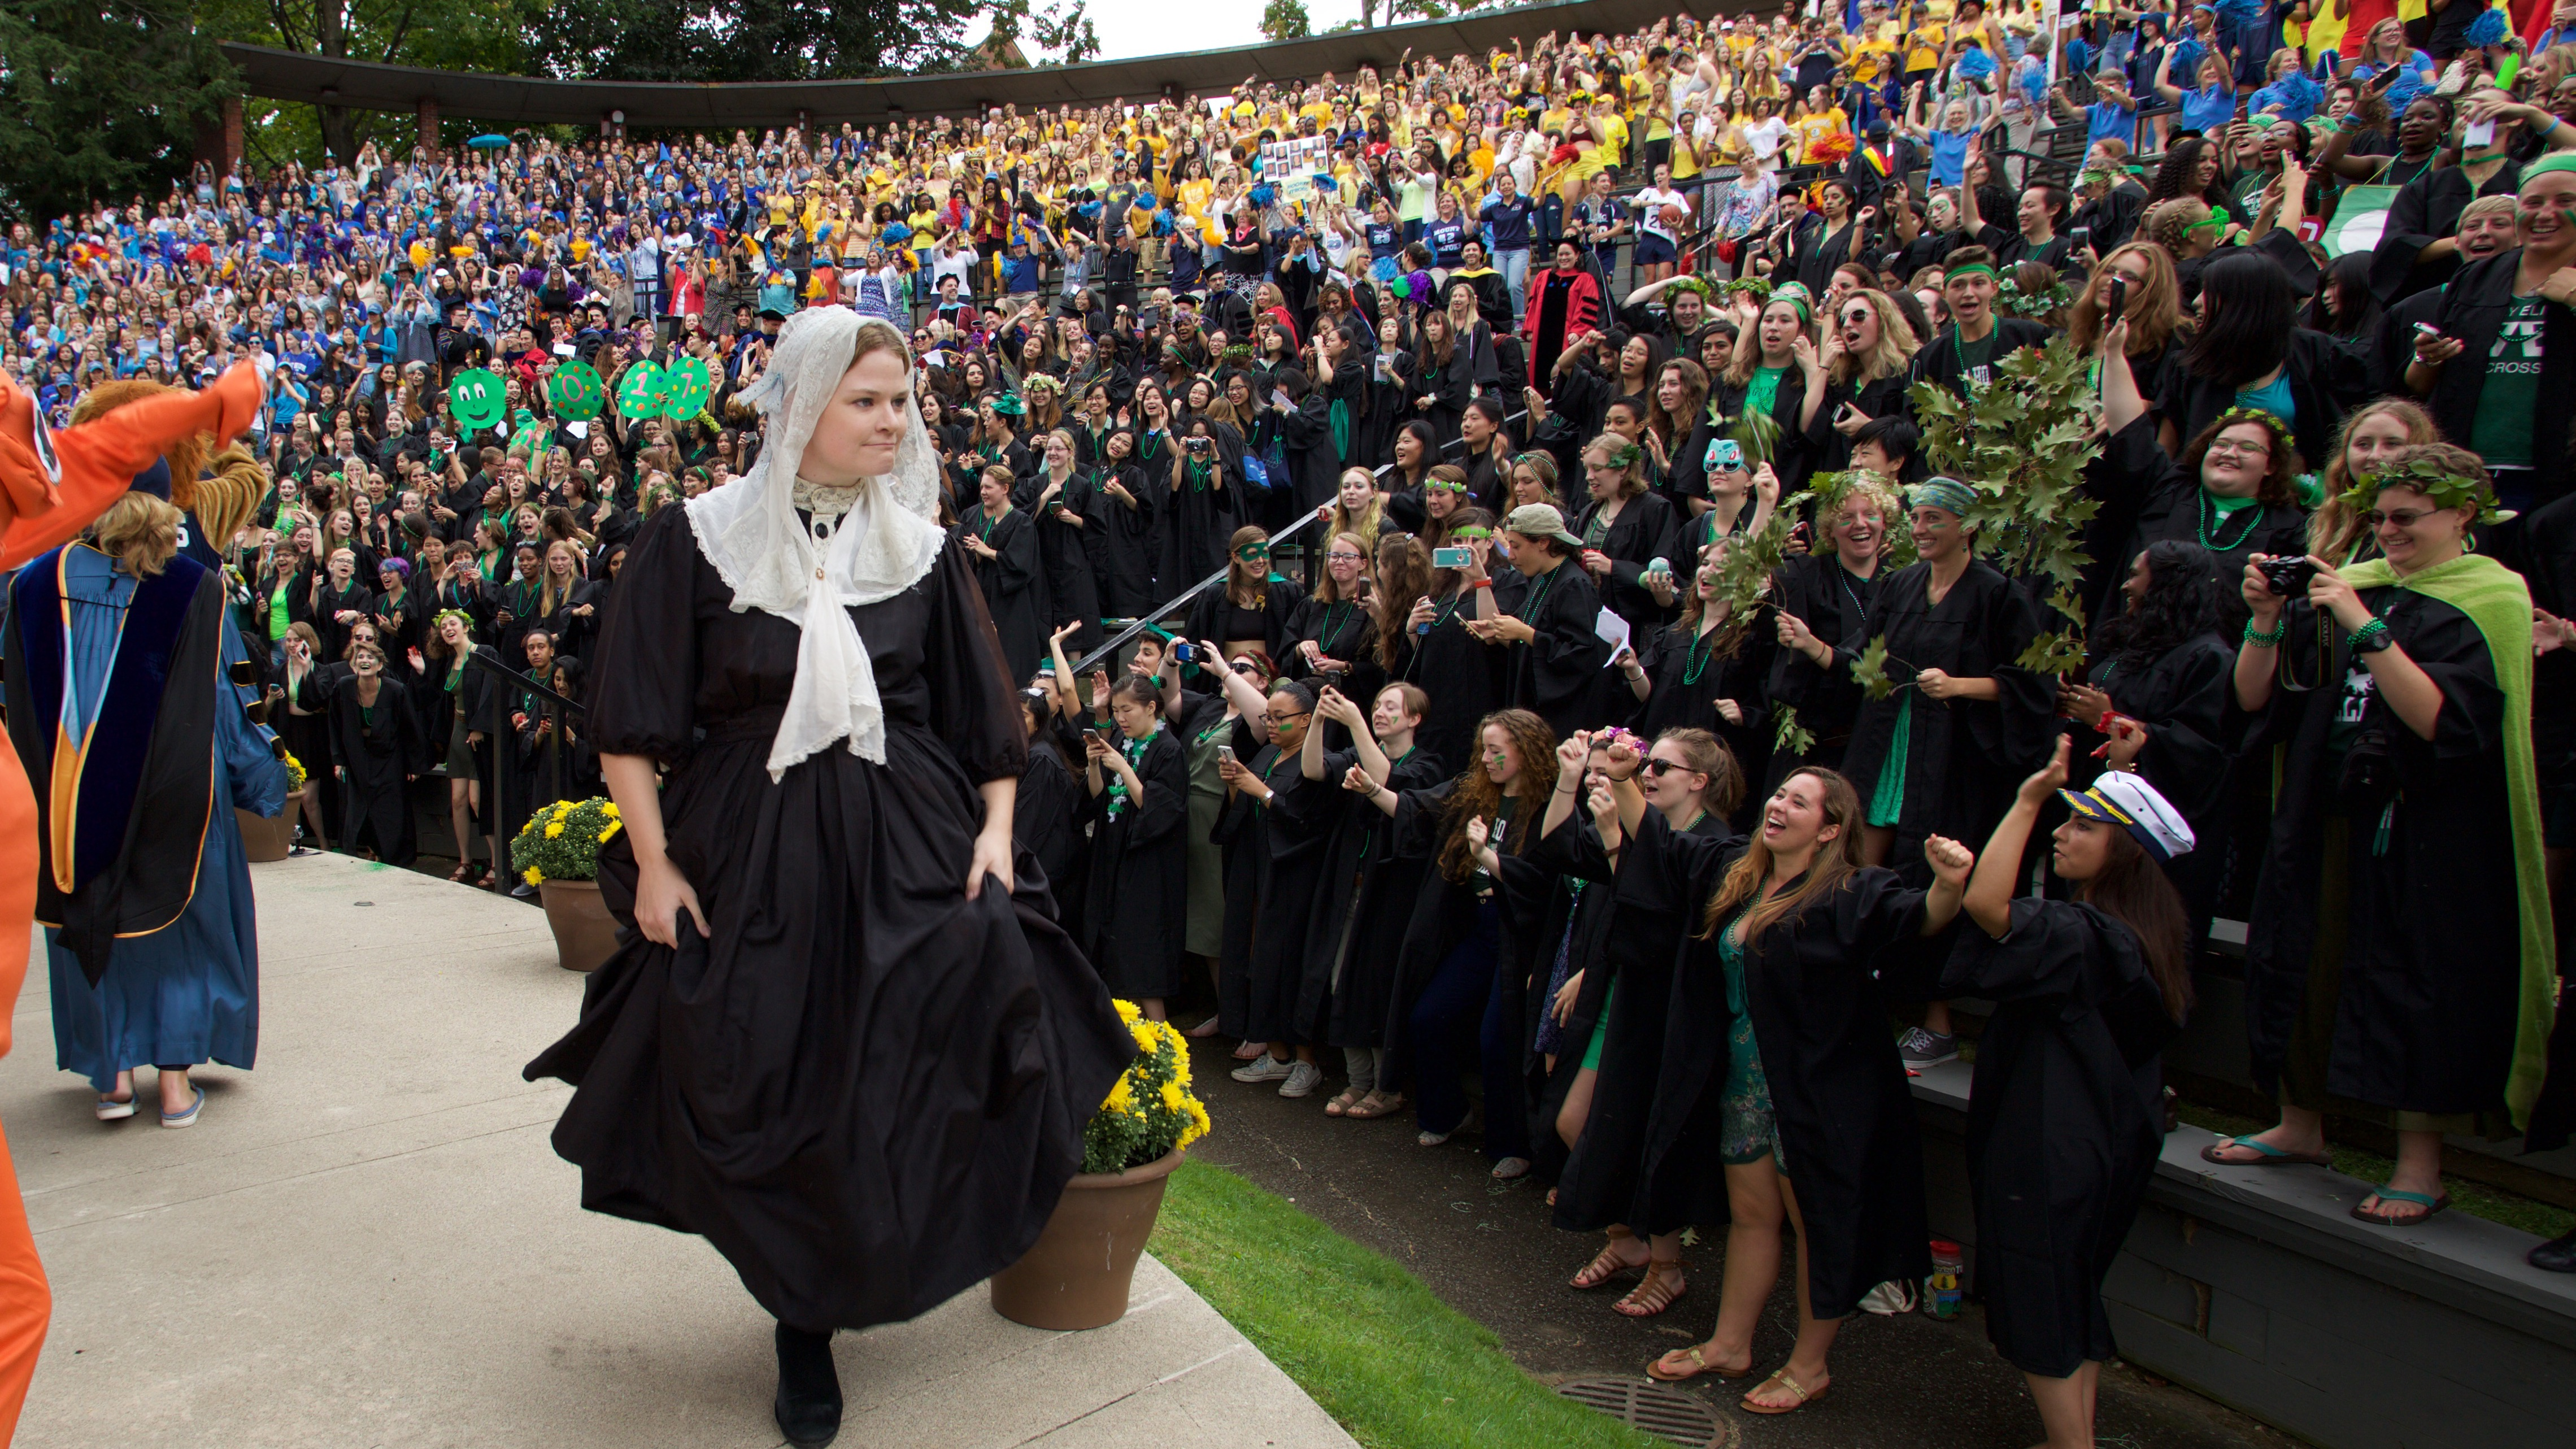 Mary Lyon turned up for Convocation 2016